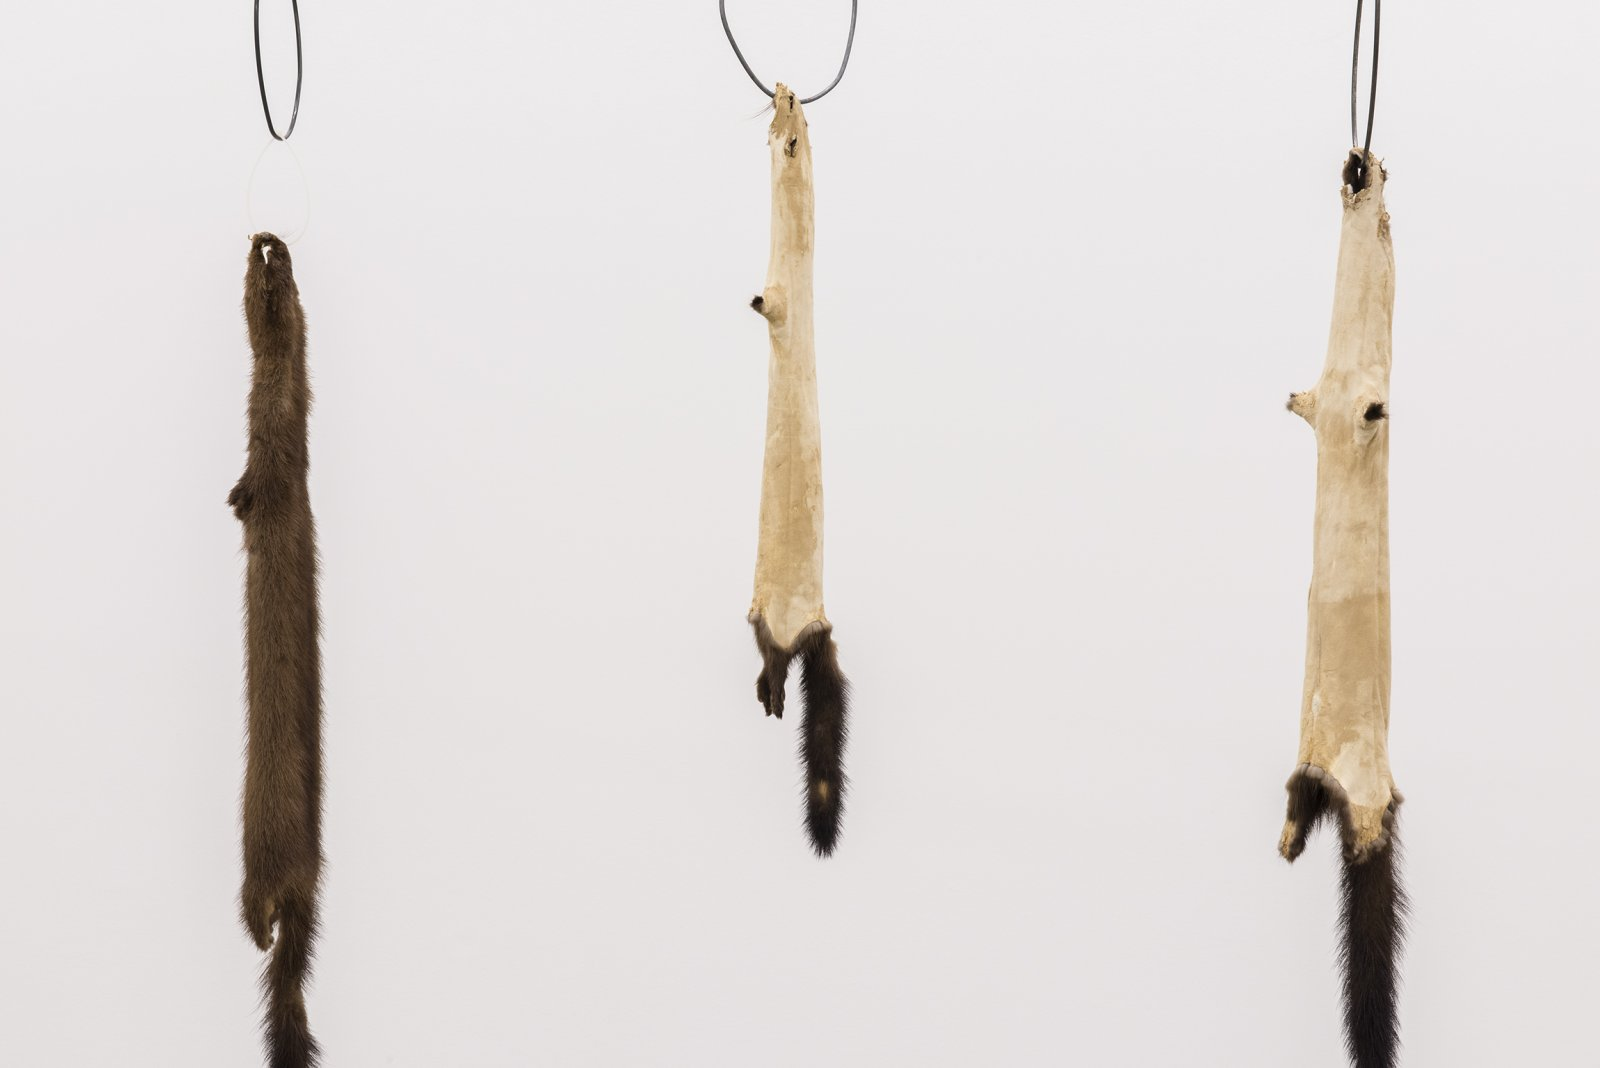 Duane Linklater, Little ghosts (detail), 2014, mink furs, garment rack, plastic cable tie, hangers, 66 x 60 x 20 in. (168 x 151 x 52 cm) by Duane Linklater